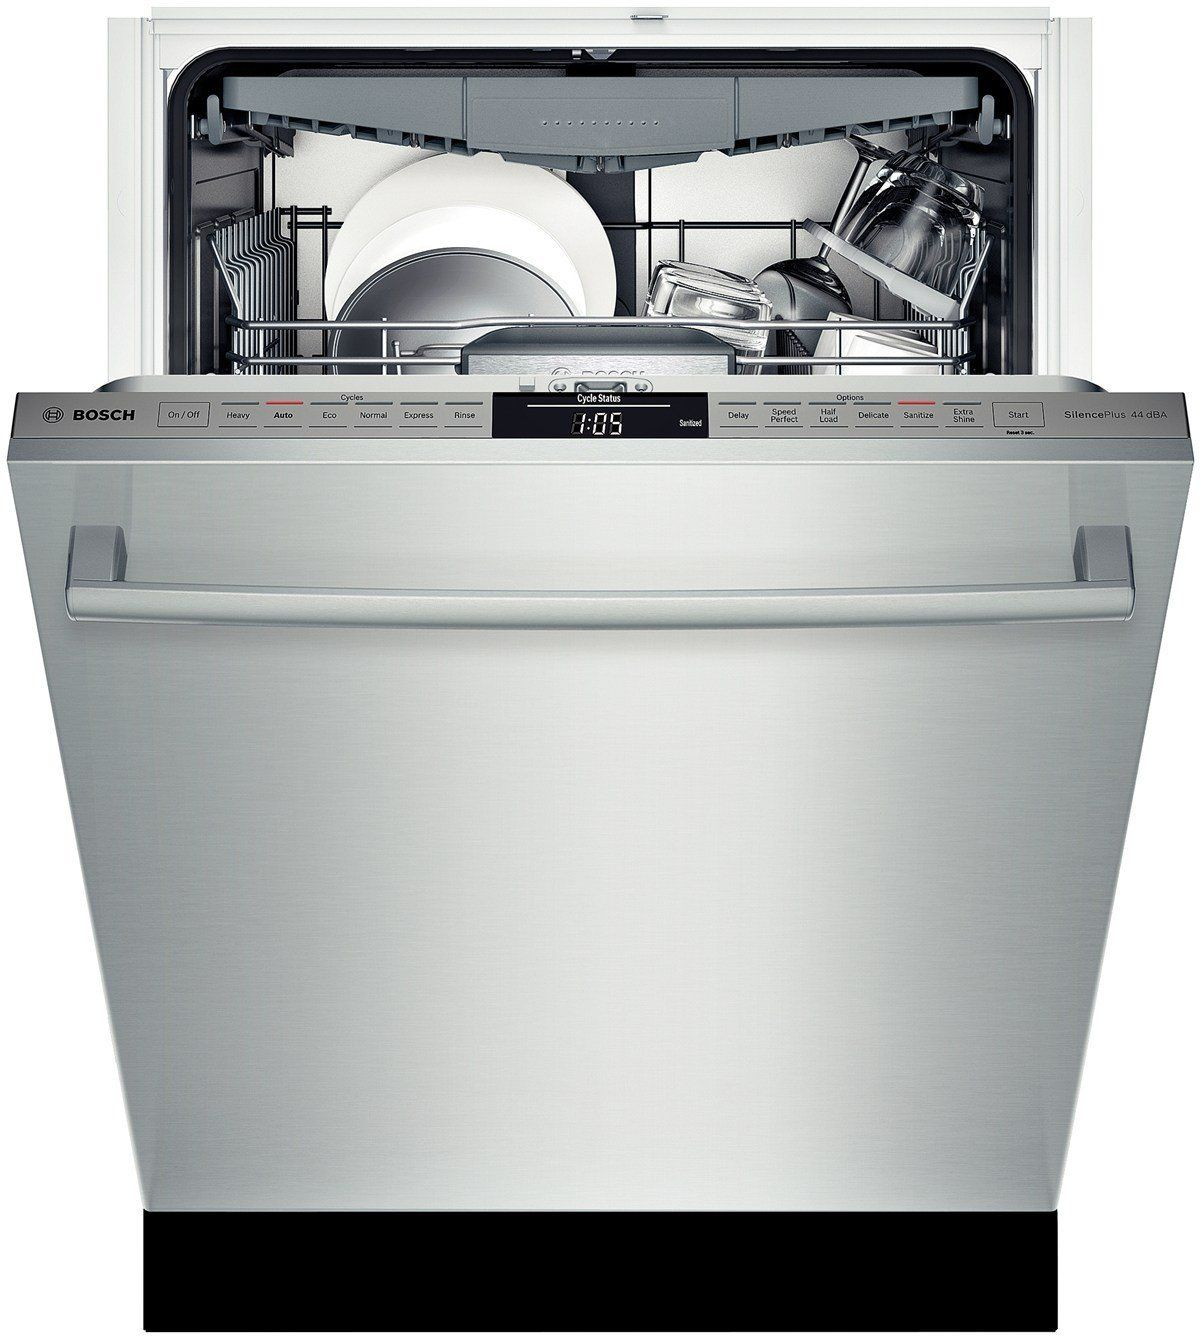 Bosch 800 Series Dishwasher With Stainless Steel Buyer S Guide